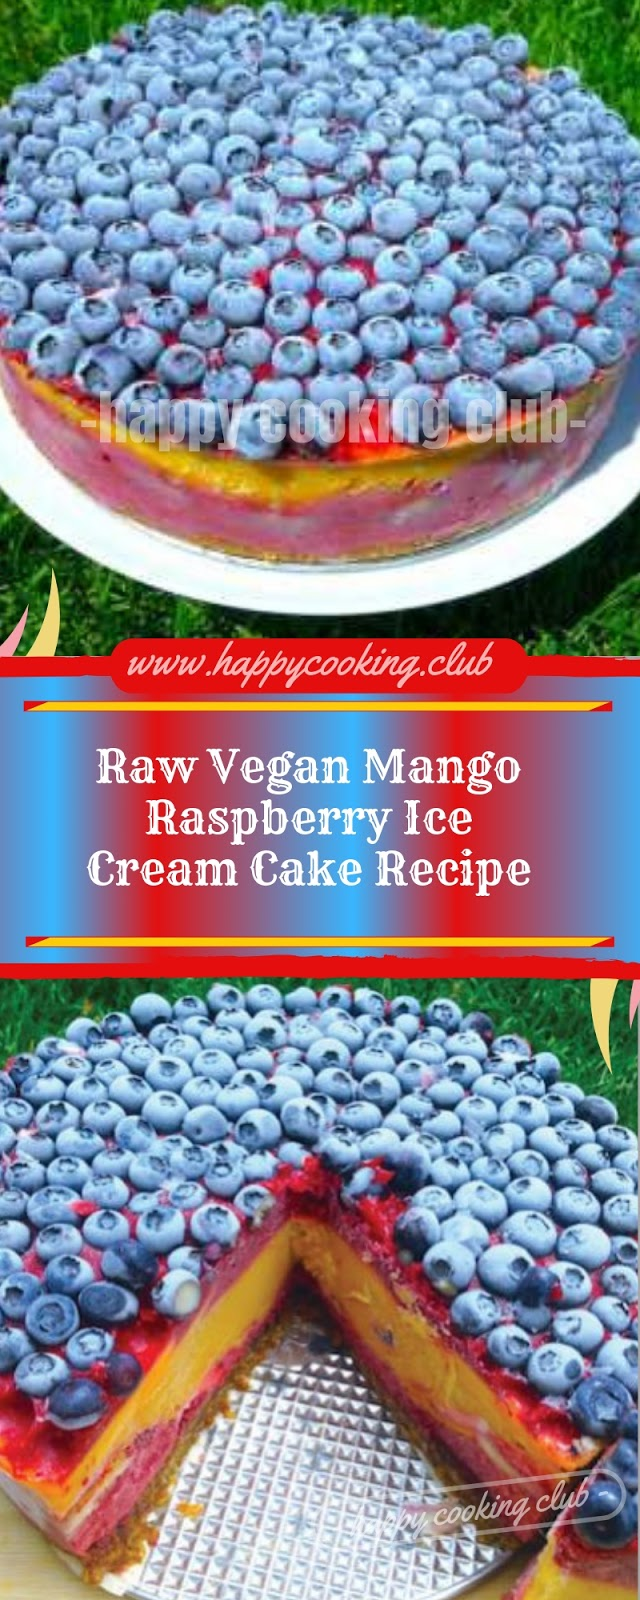 Raw Vegan Mango Raspberry Ice Cream Cake Recipe